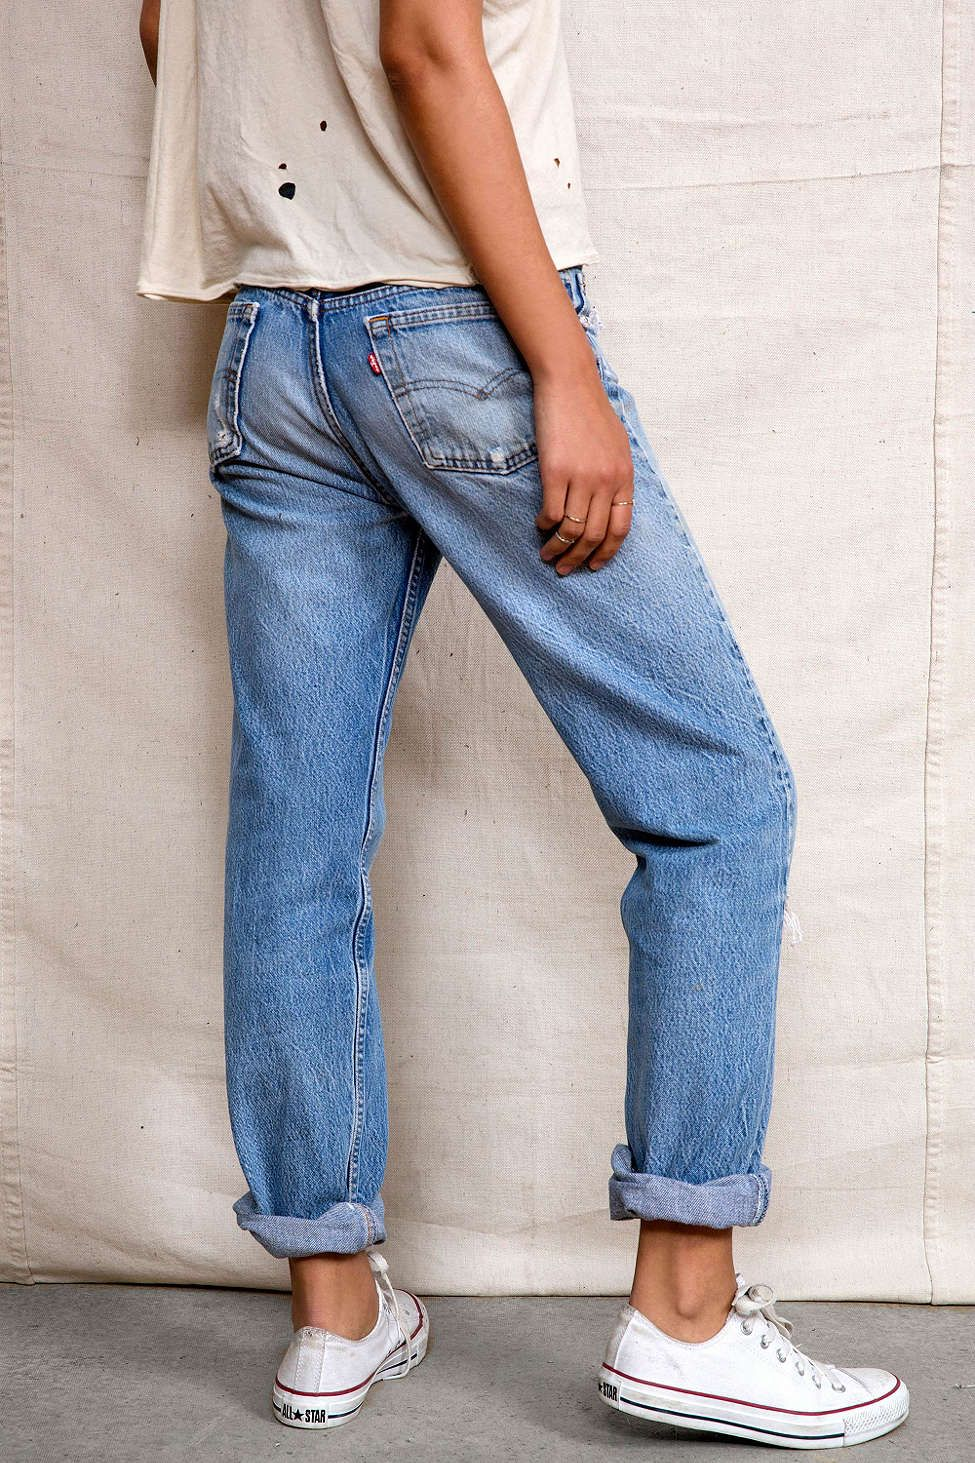 abf26d8f77506 Urban Renewal Vintage Levis 505   501 Jean - Urban Outfitters ...